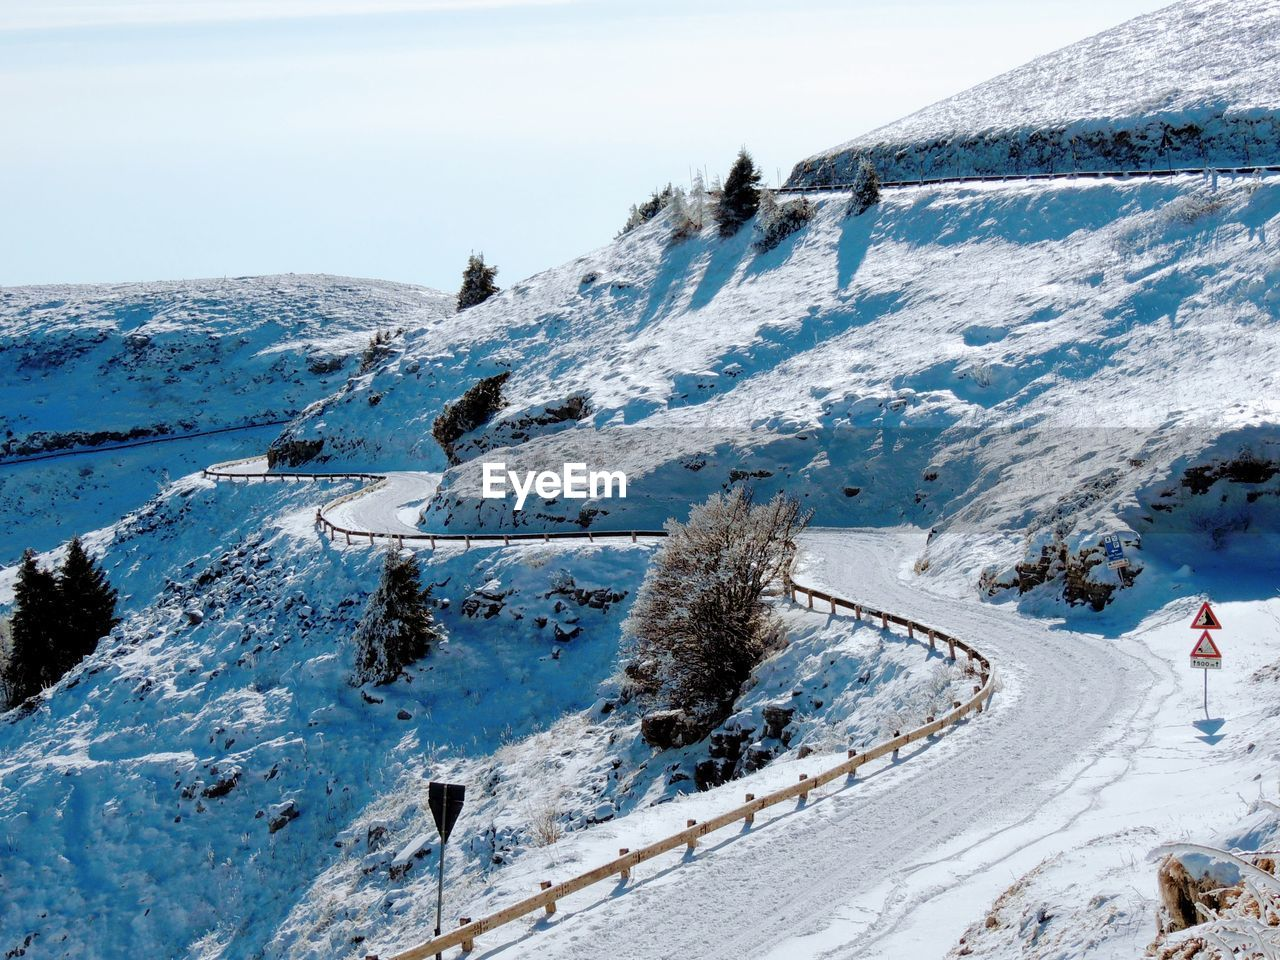 snow, winter, cold temperature, mountain, scenics - nature, beauty in nature, tranquil scene, day, white color, sky, nature, tranquility, landscape, mountain range, non-urban scene, environment, covering, snowcapped mountain, plant, outdoors